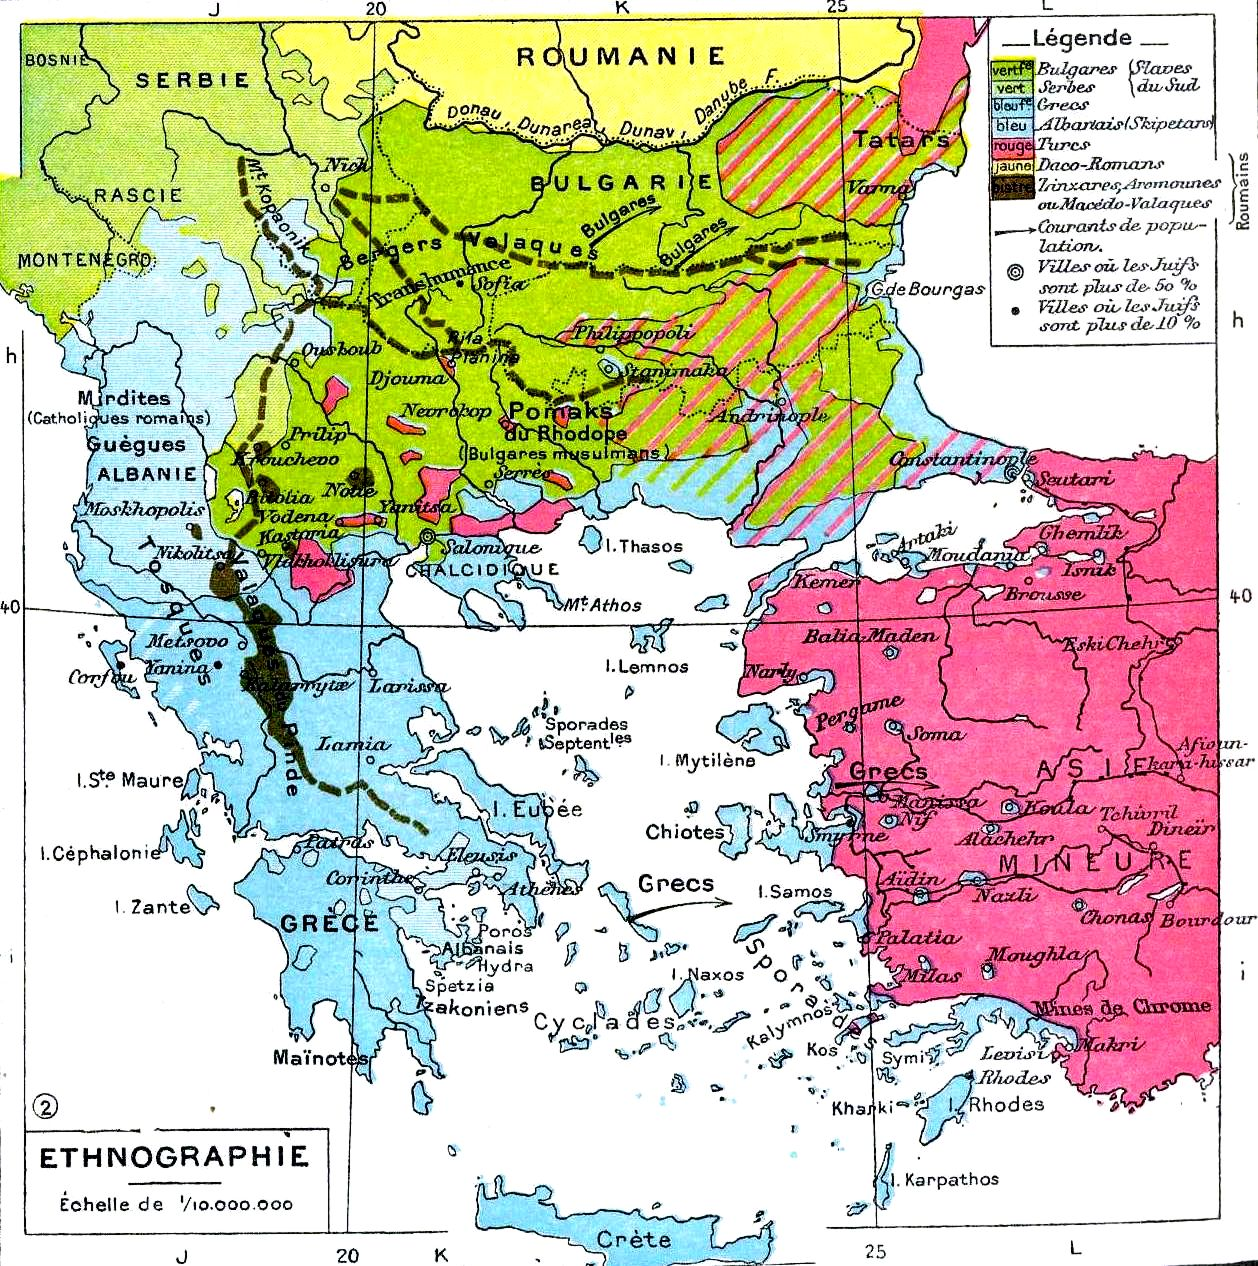 Si System Conversion Chart: Demographic history of Macedonia - Wikipedia,Chart